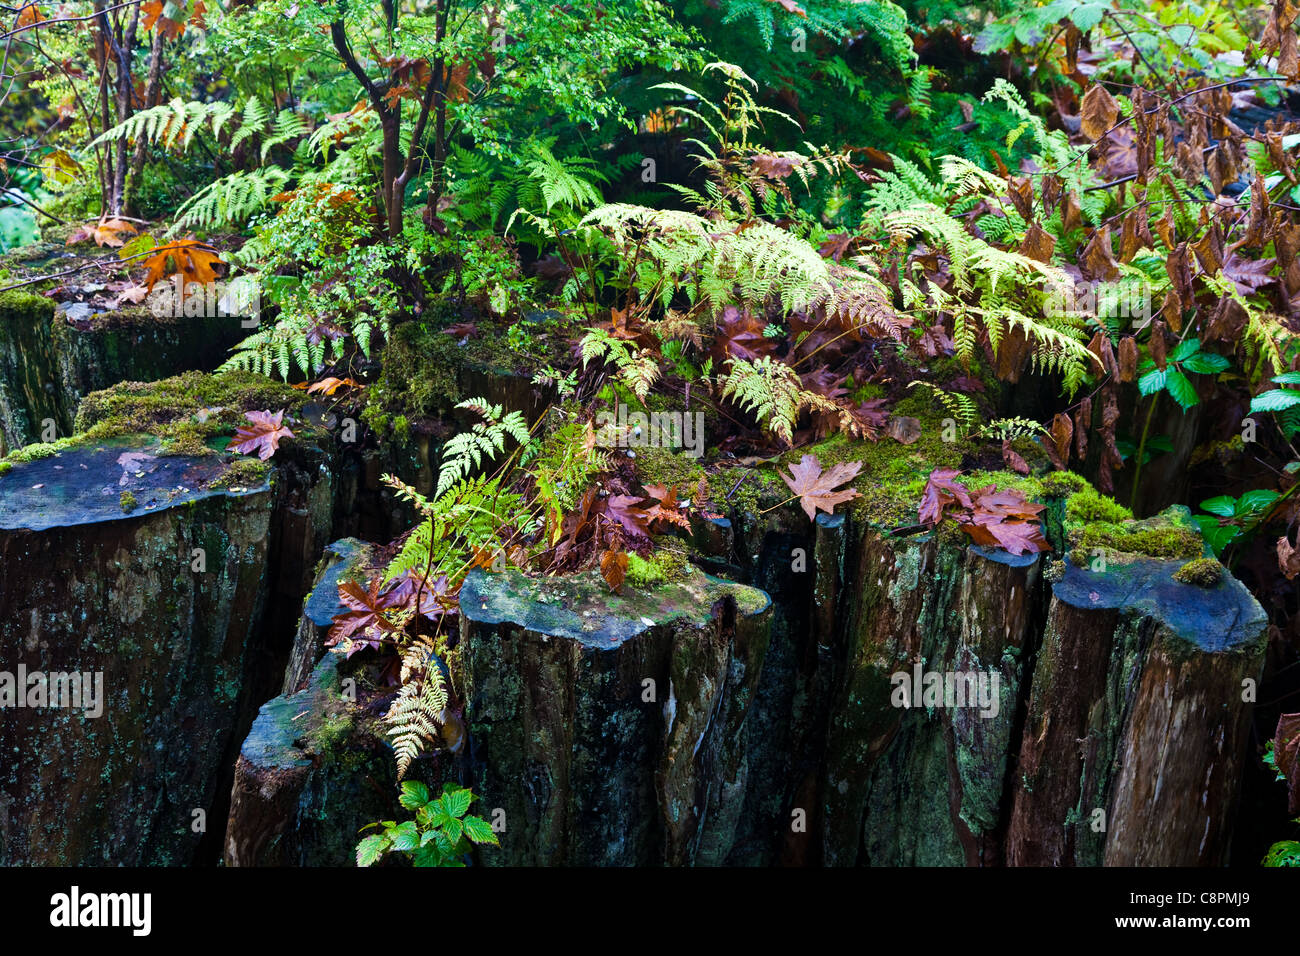 A stump of a logged Western Red Cedar now host to new growth, British Columbia, Canada Stock Photo